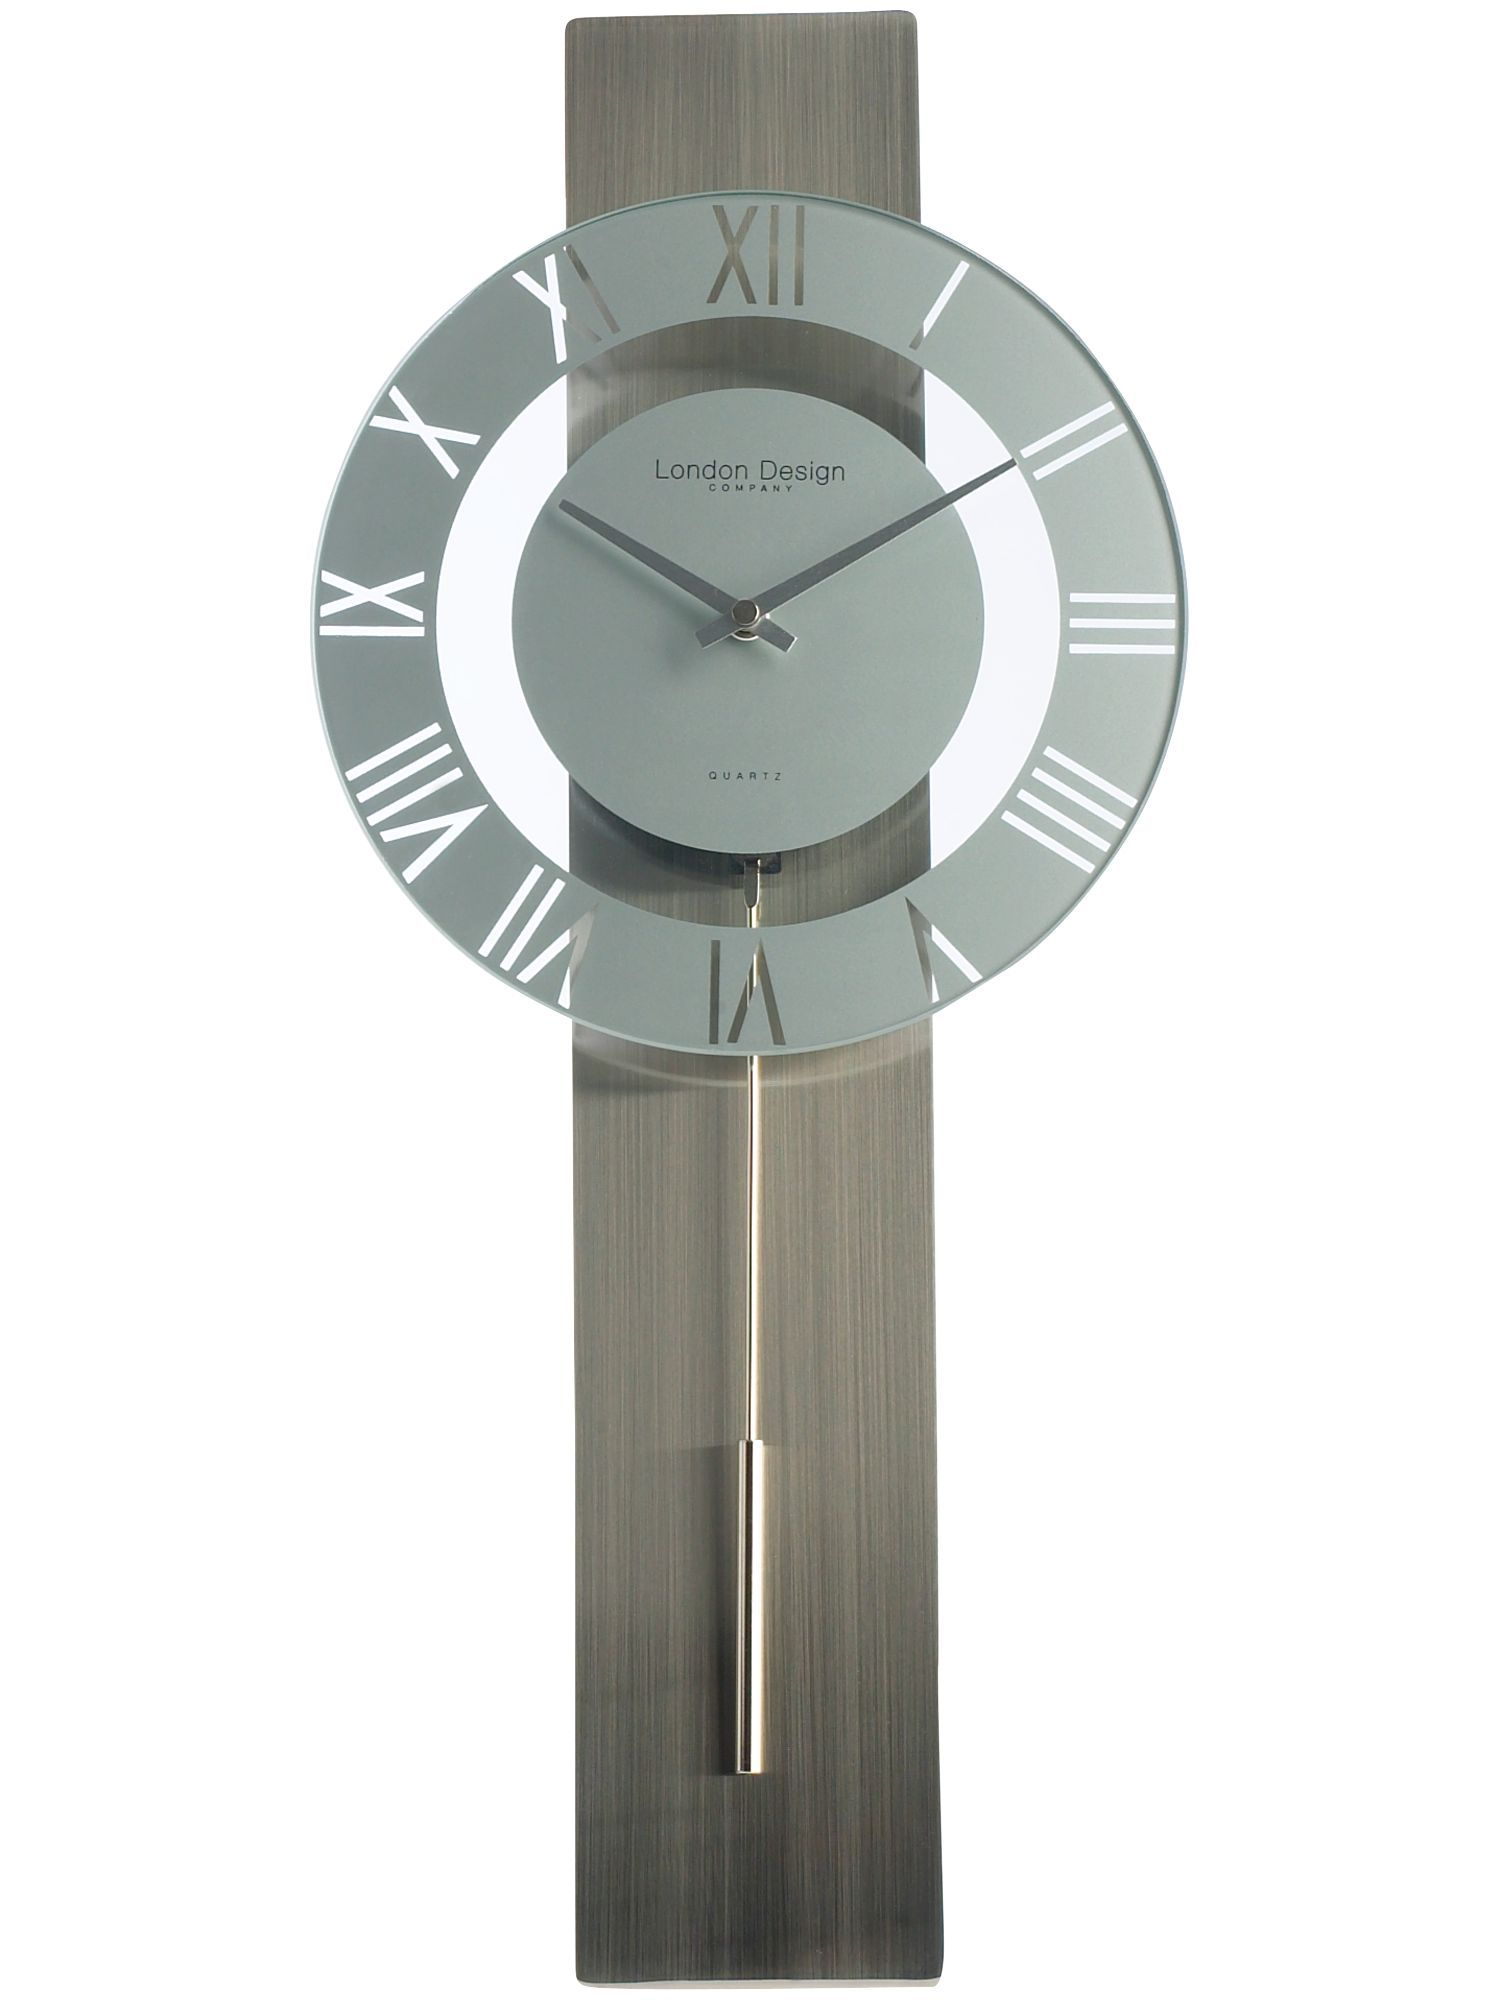 London Clock Silver Pendulum Wall Clock House Pinterest London Clock Wall Clocks And Wall